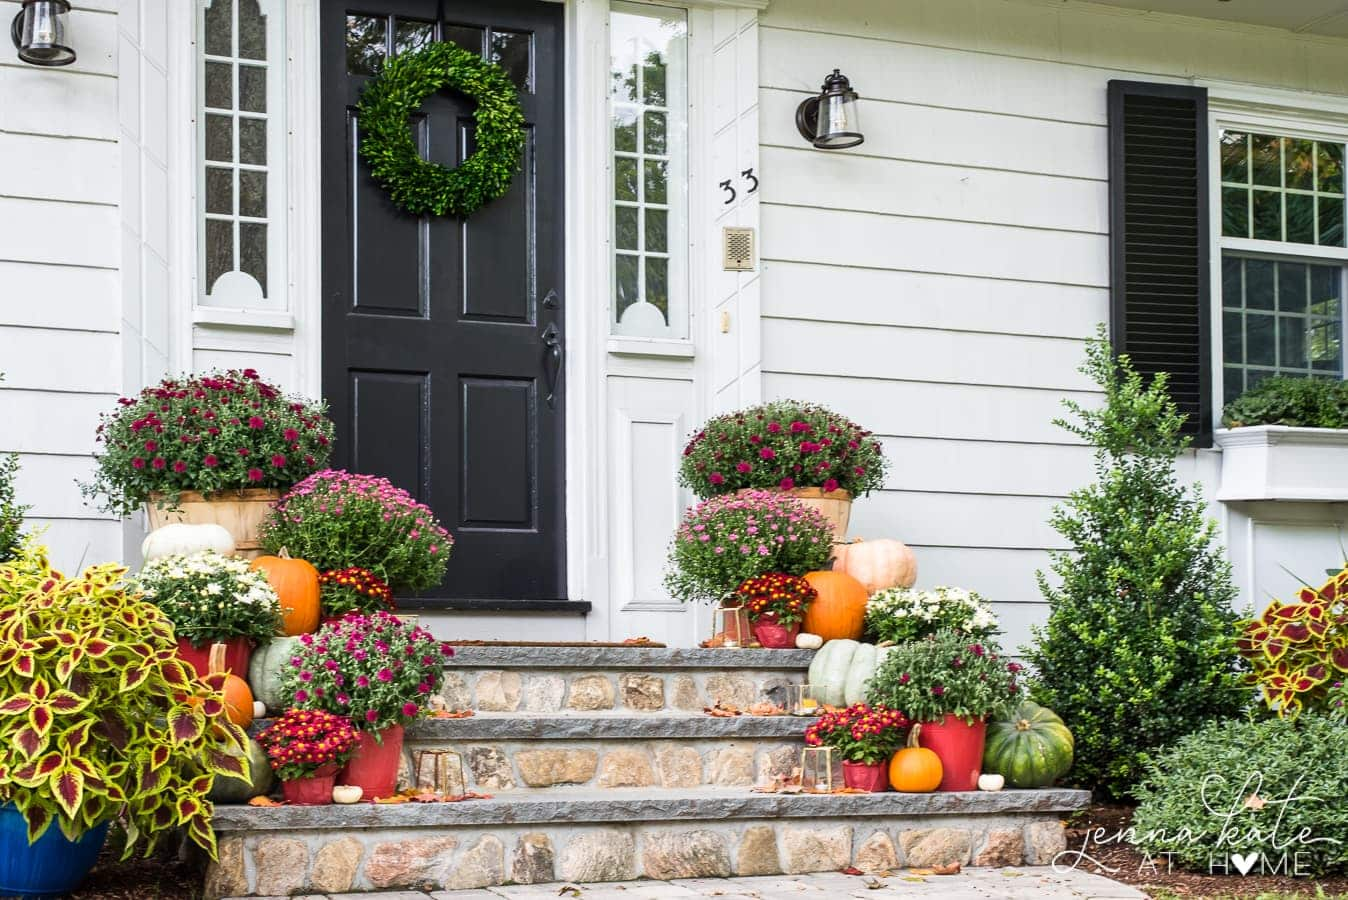 Traditional fall front porch decor with mums and pumpkins